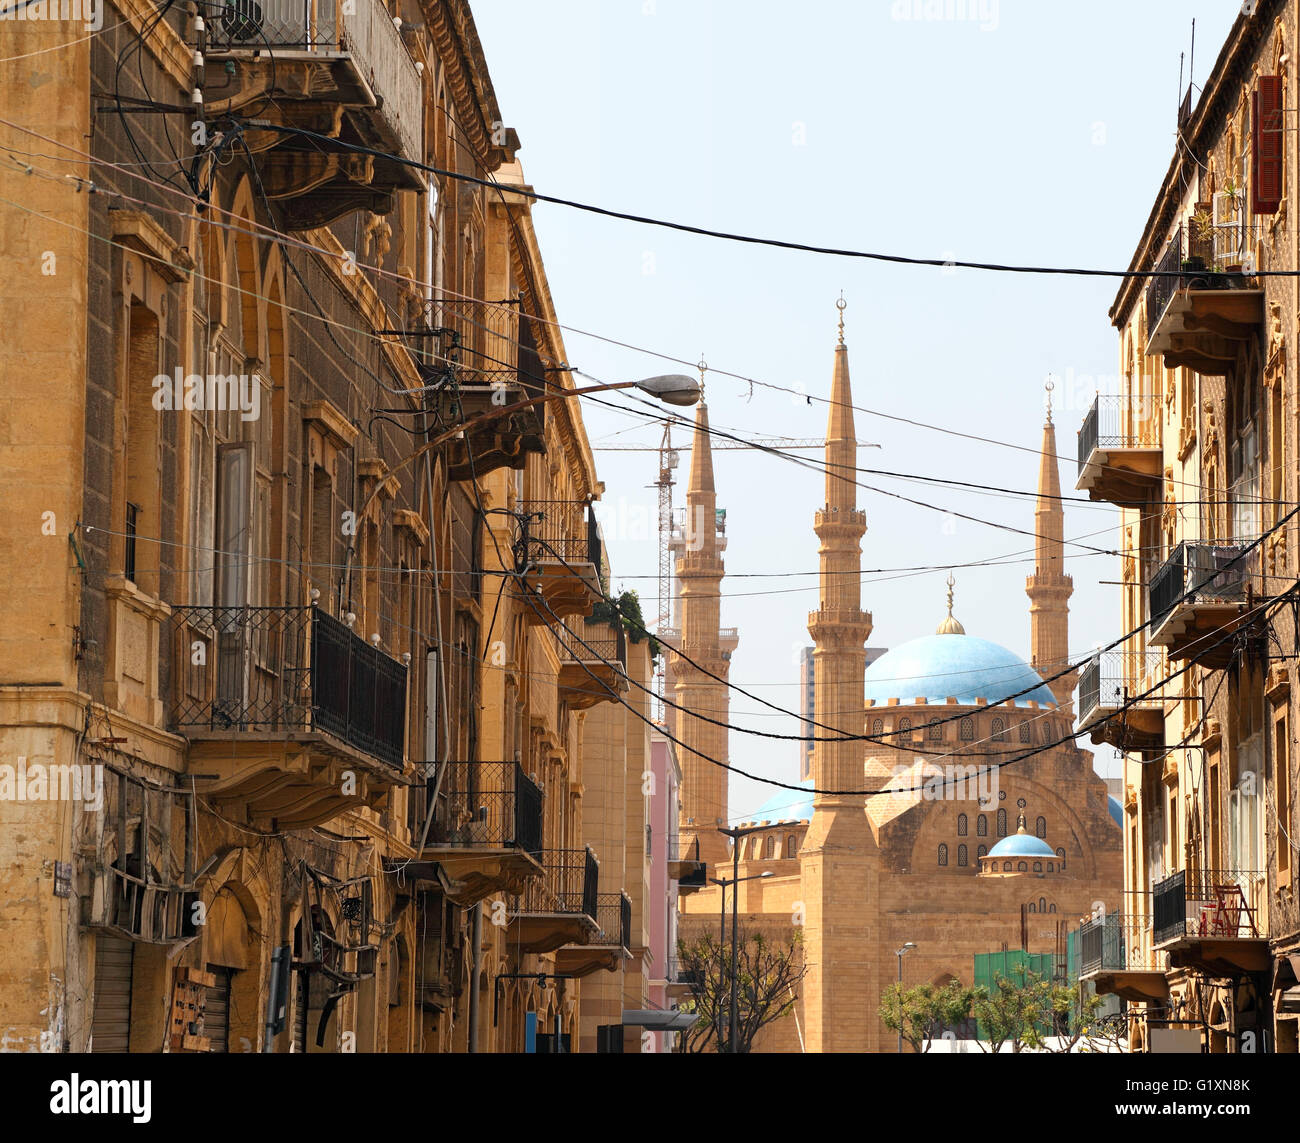 Beirut Architecture - Stock Image